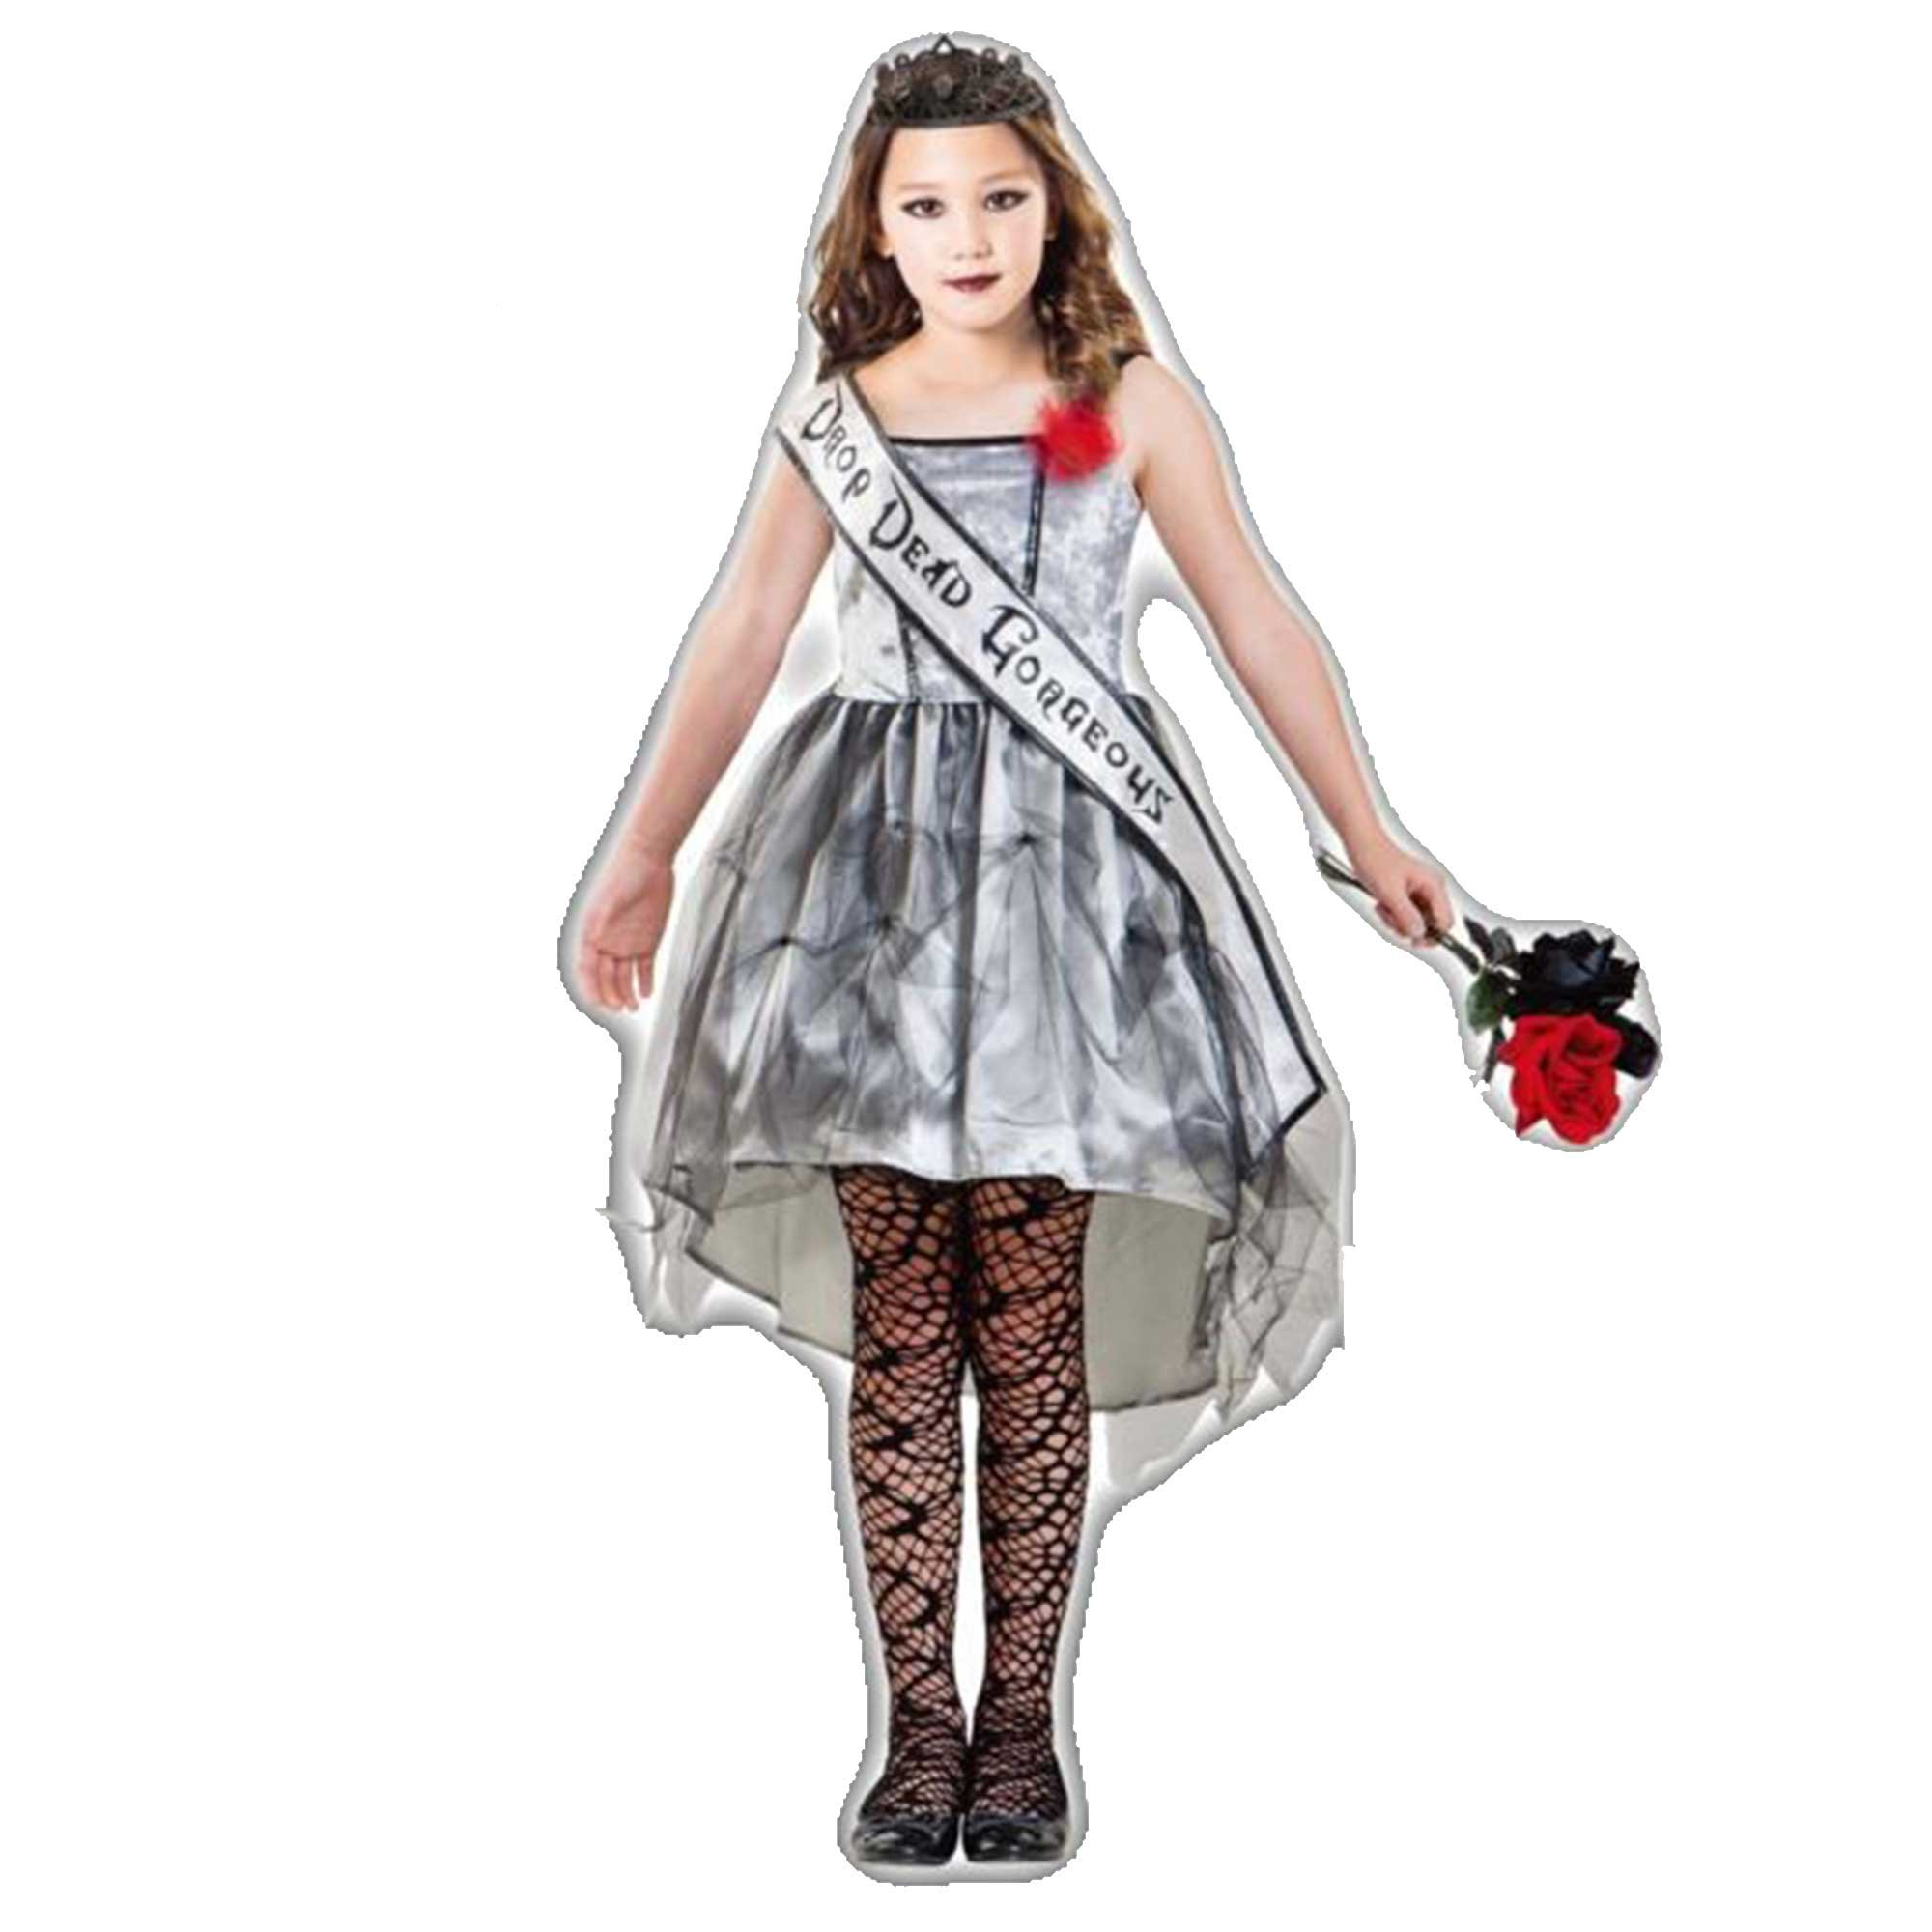 Costume Gothic Beauty Queen Girls 8-10 Years